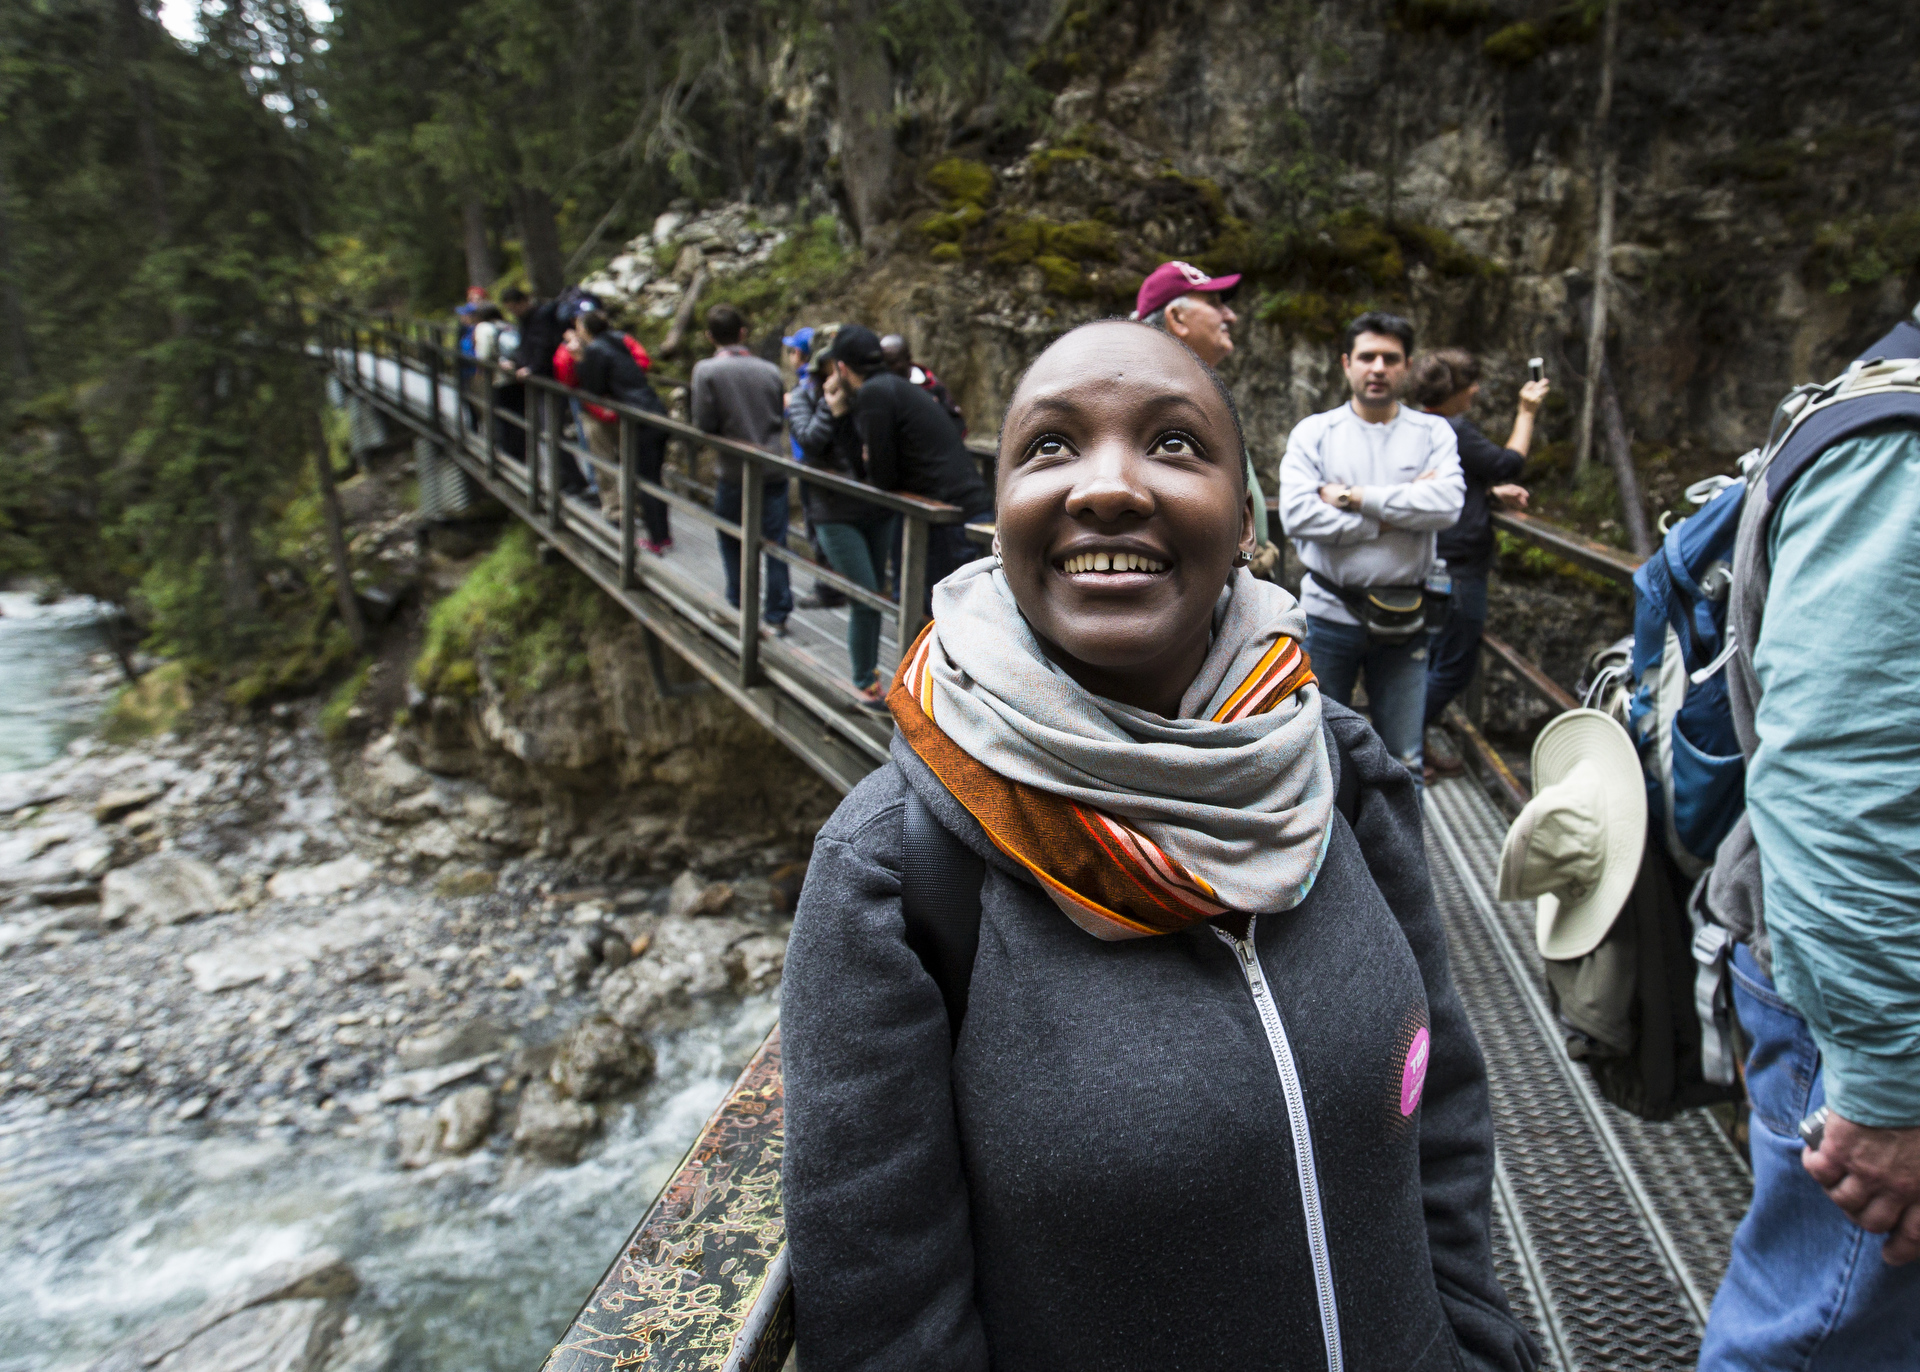 TED Fellow Majala Mlagui on a hike before TEDSummit 2016, June 26, 2016, Banff, Canada. Photo: Ryan Lash / TED